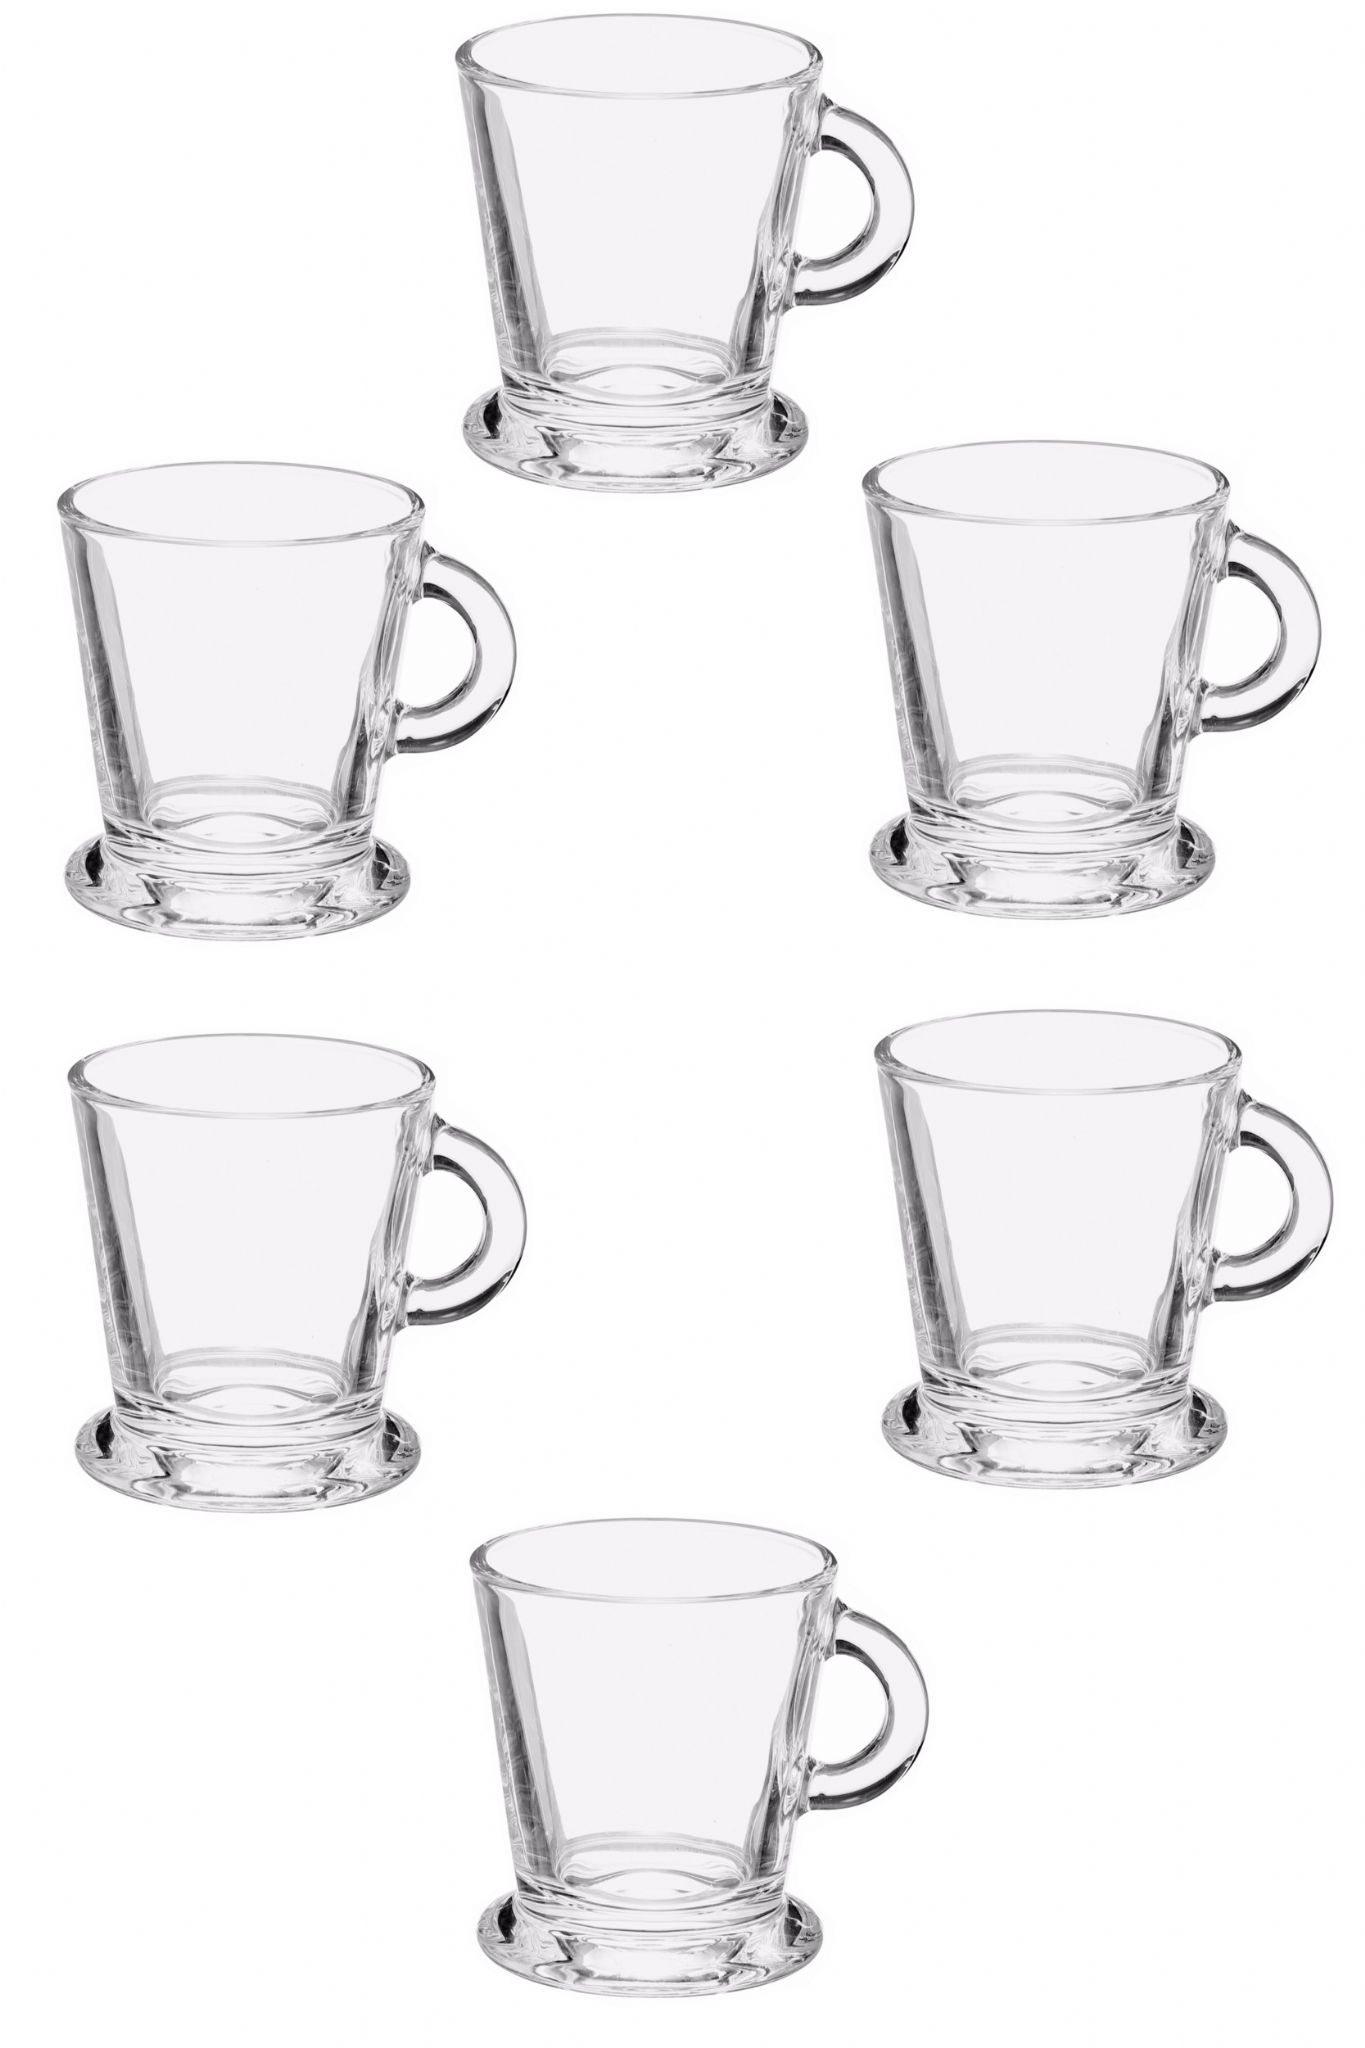 Glass espresso coffee cups uk - Glass Espresso Coffee Cups Uk 5